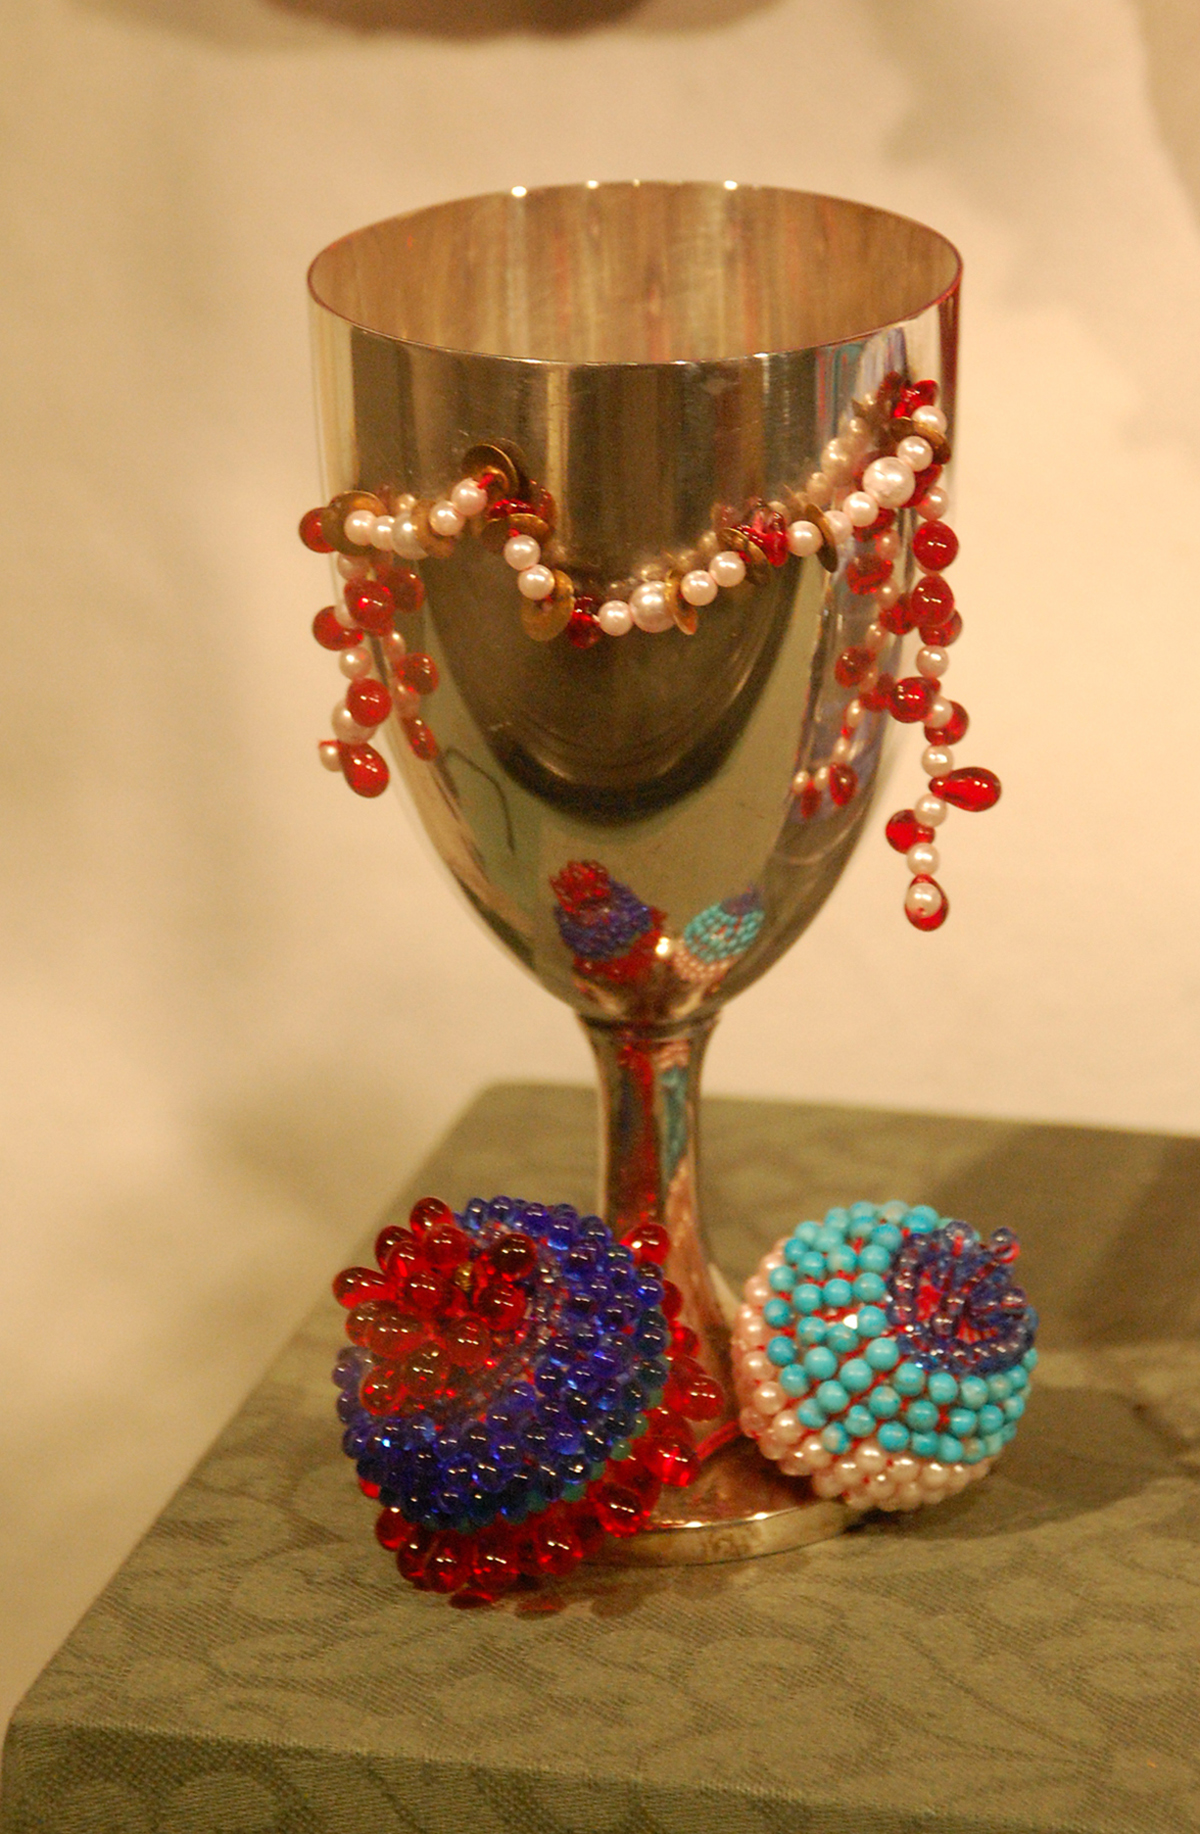 Miriam Cup (2000), Sterling Silver, mock pearls, stitched by Ita Aber